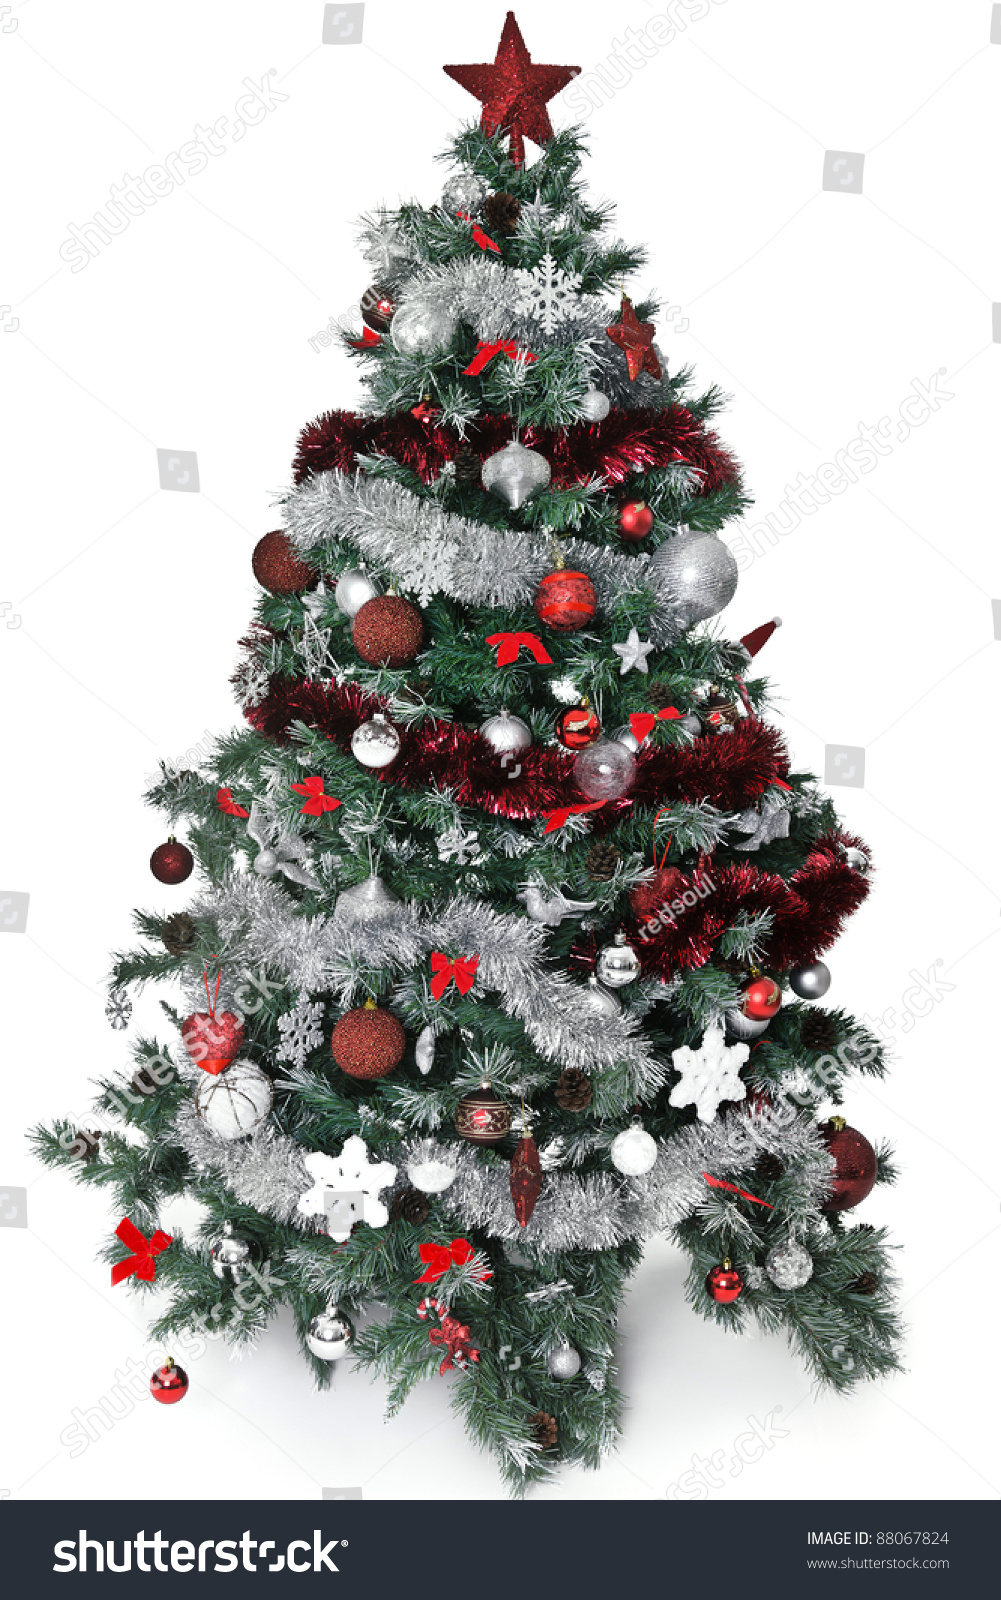 Christmas tree with lot of silver and red decoration stock for Christmas tree with red and silver decorations